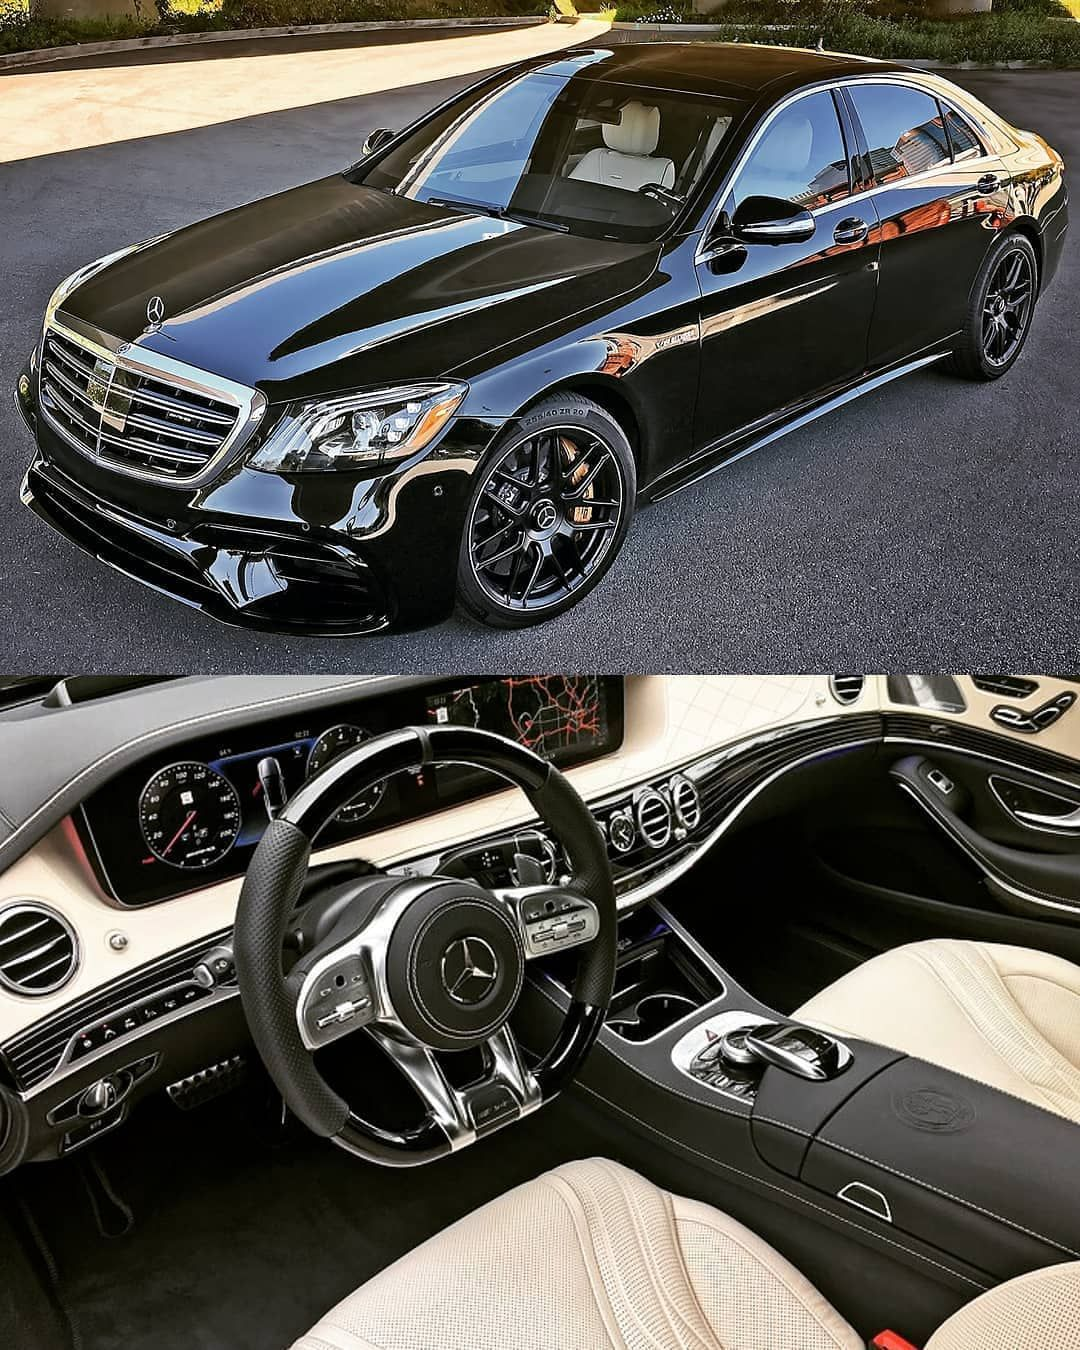 Mercedes Benz Amg S63 Follow Uber Luxury For More Via